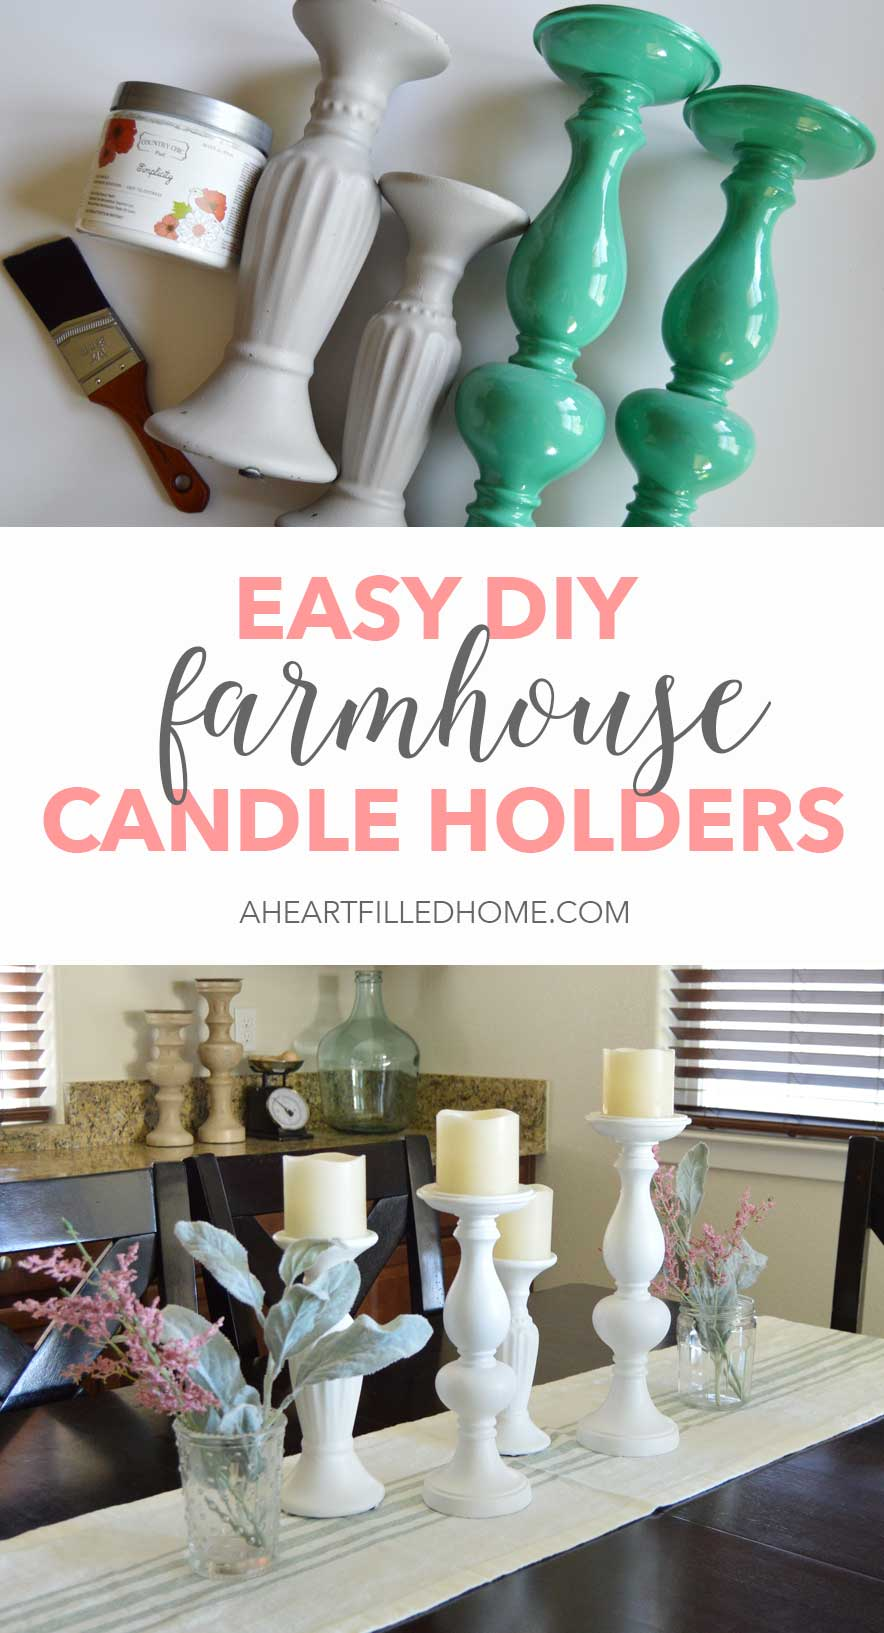 This is an easy way to create a matching set of farmhouse candle holders!